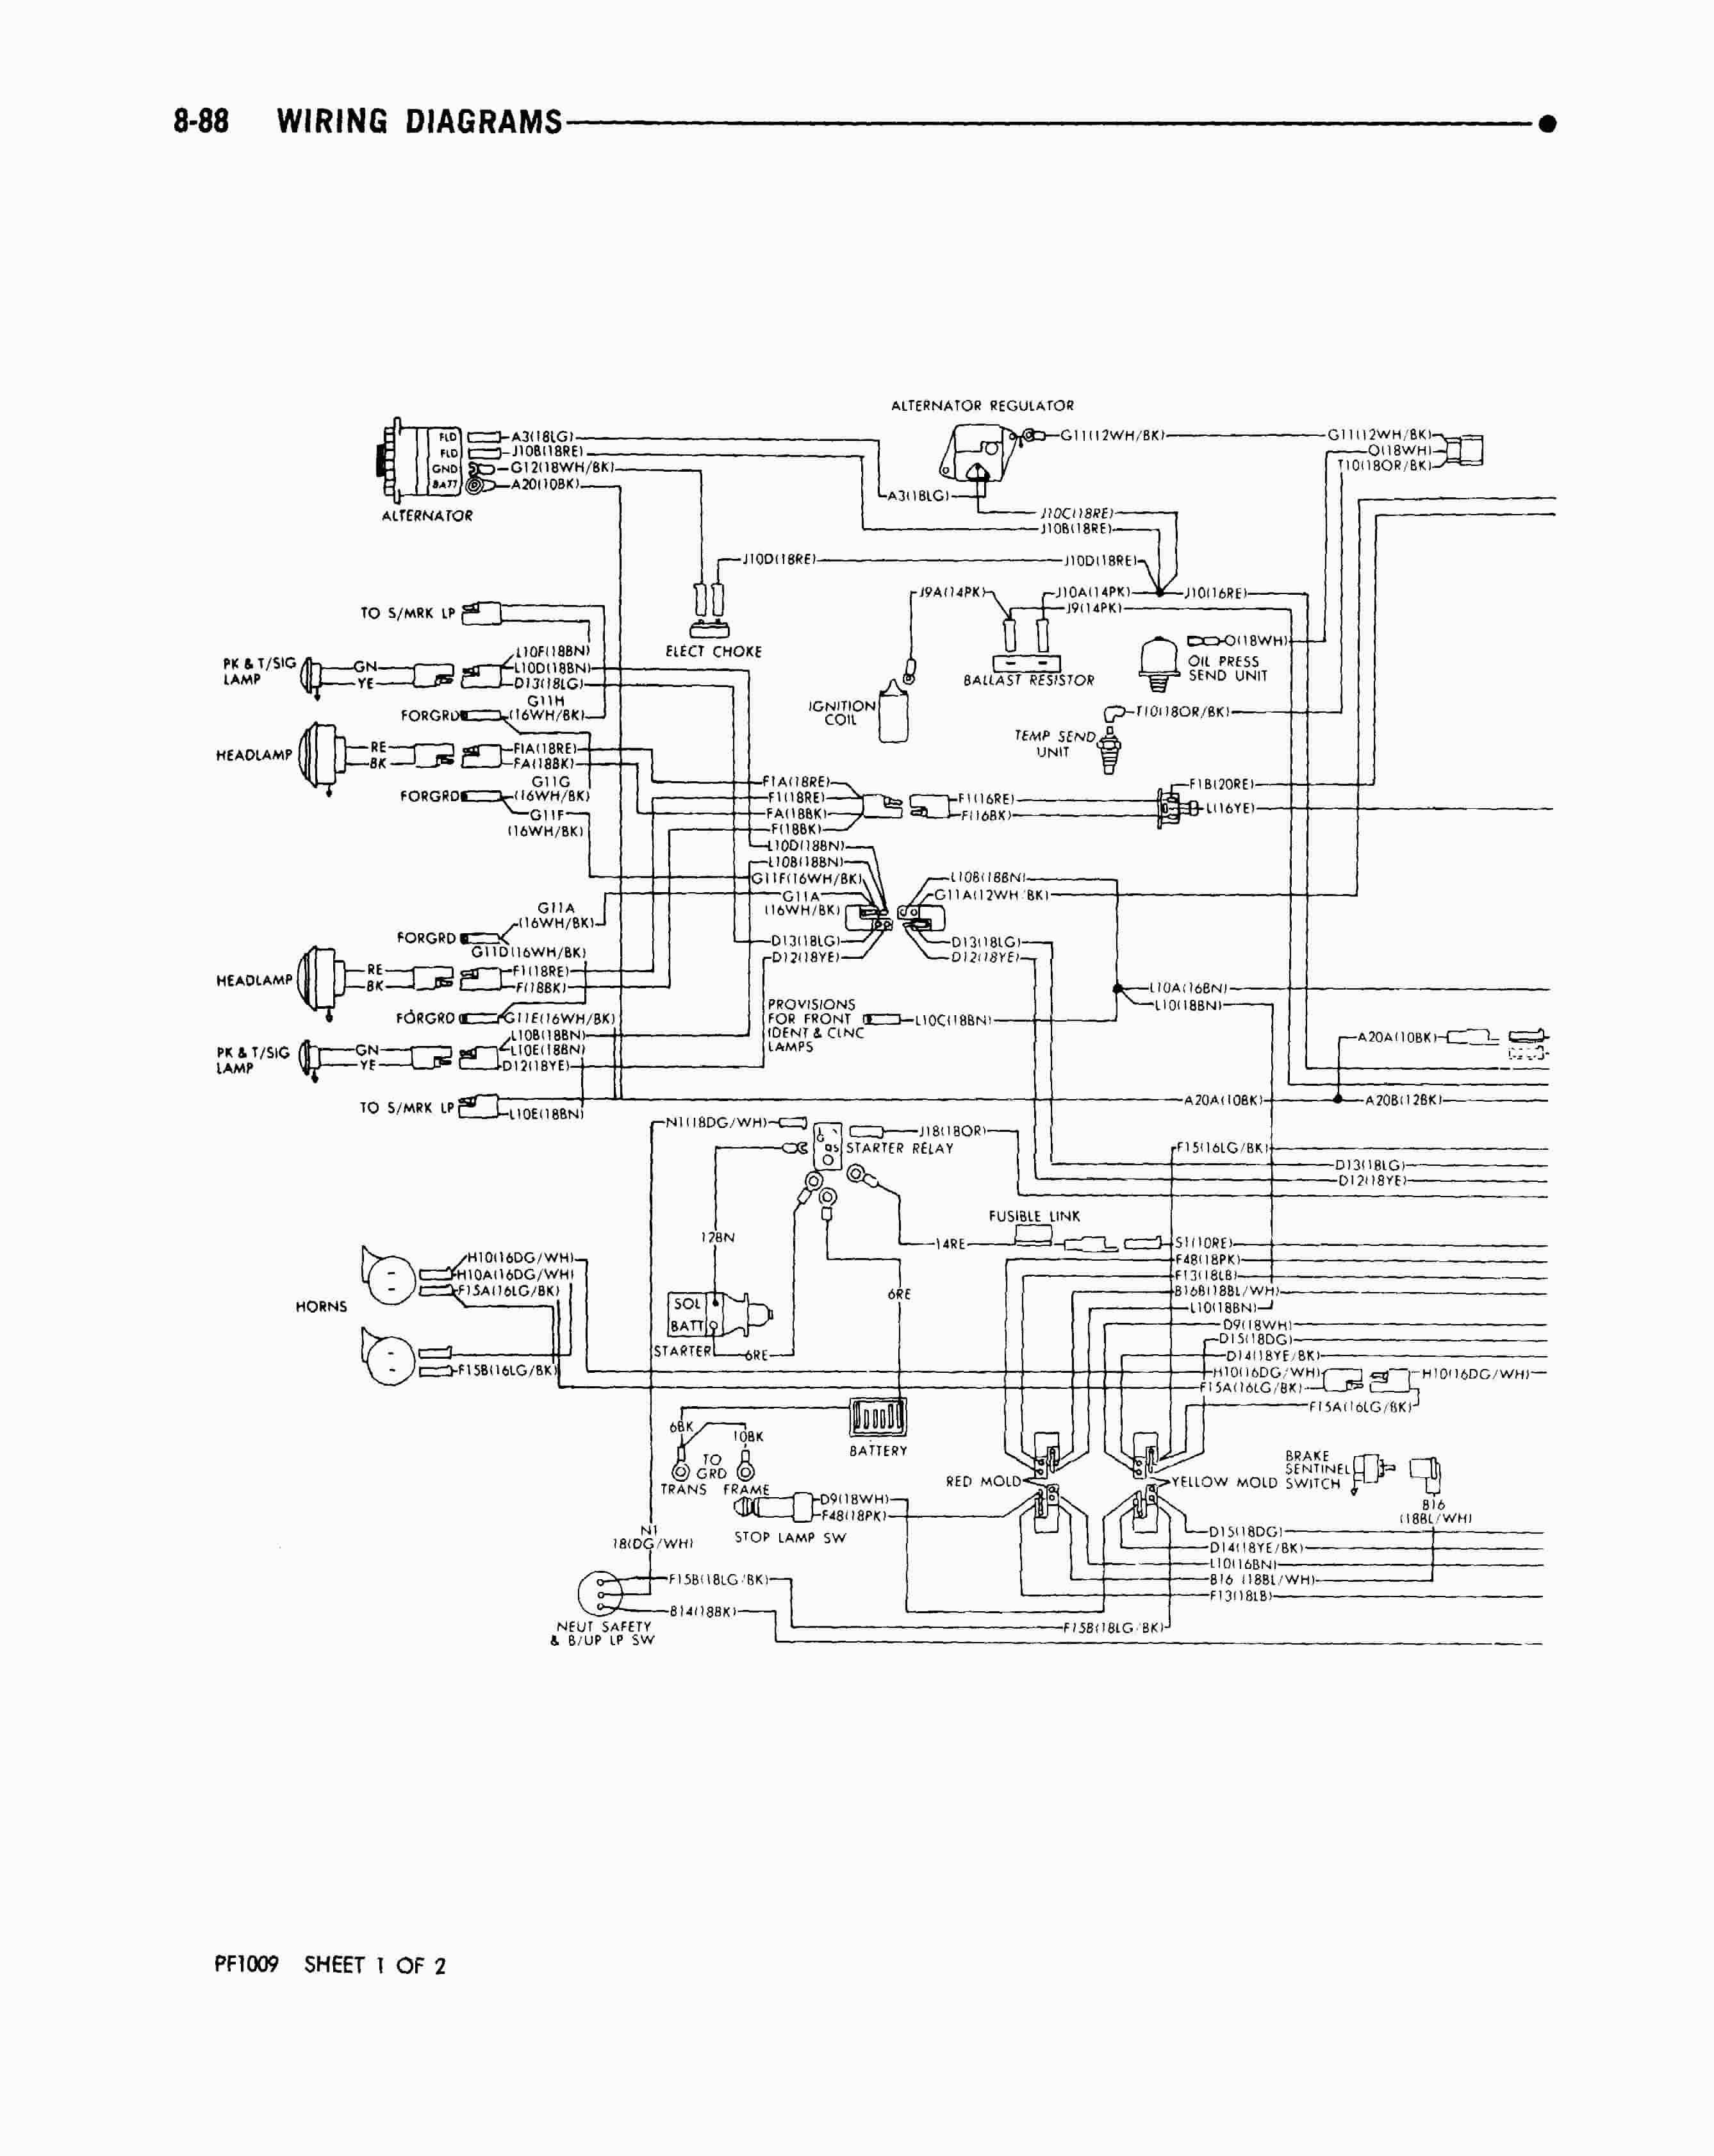 Ford Chassis Wiring Diagram | schedule-pattern Wiring Diagram union -  schedule-pattern.buildingblocks2016.eu | Ford F53 Chassis Wiring Diagram |  | buildingblocks2016.eu